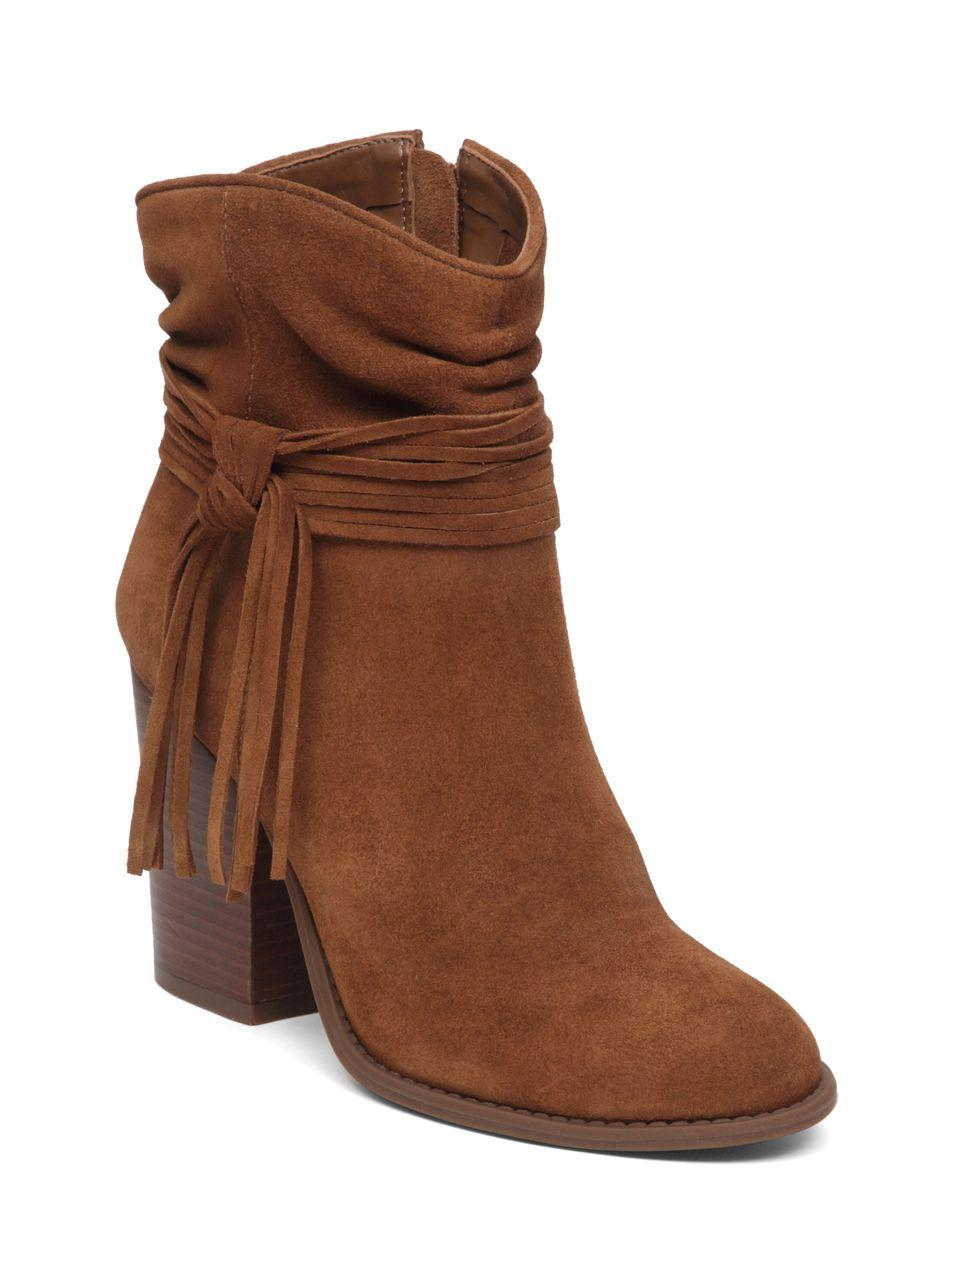 sesley suede tassel accent boots in brown